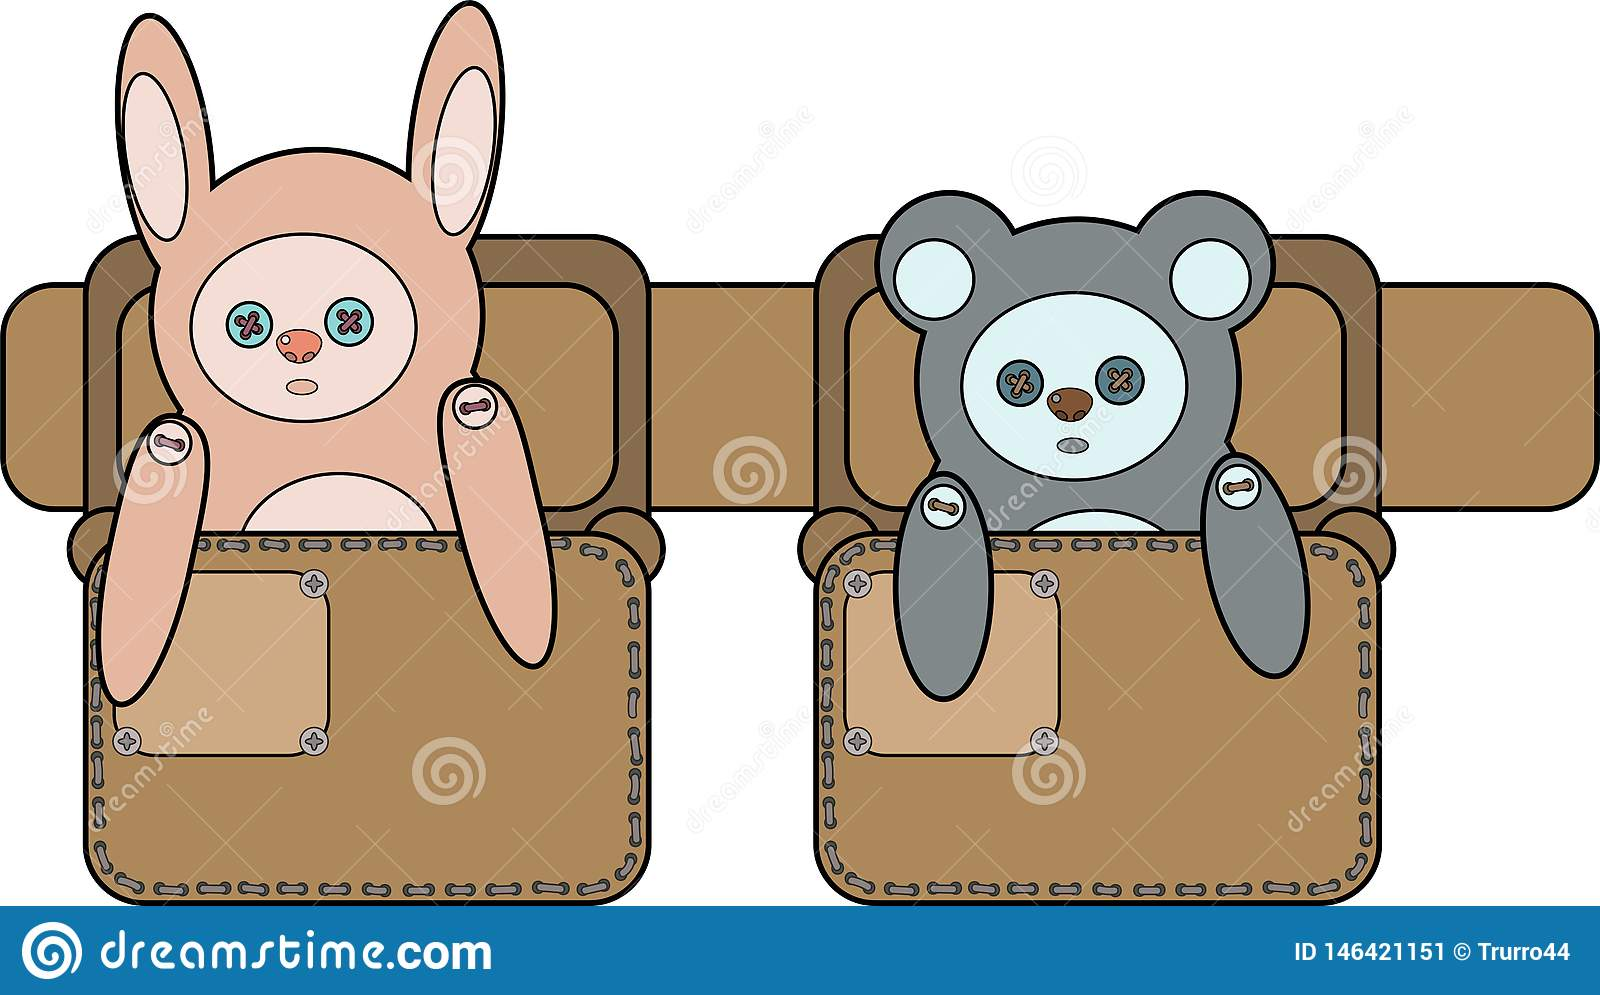 A toy Bunny and bear the bags on the belt